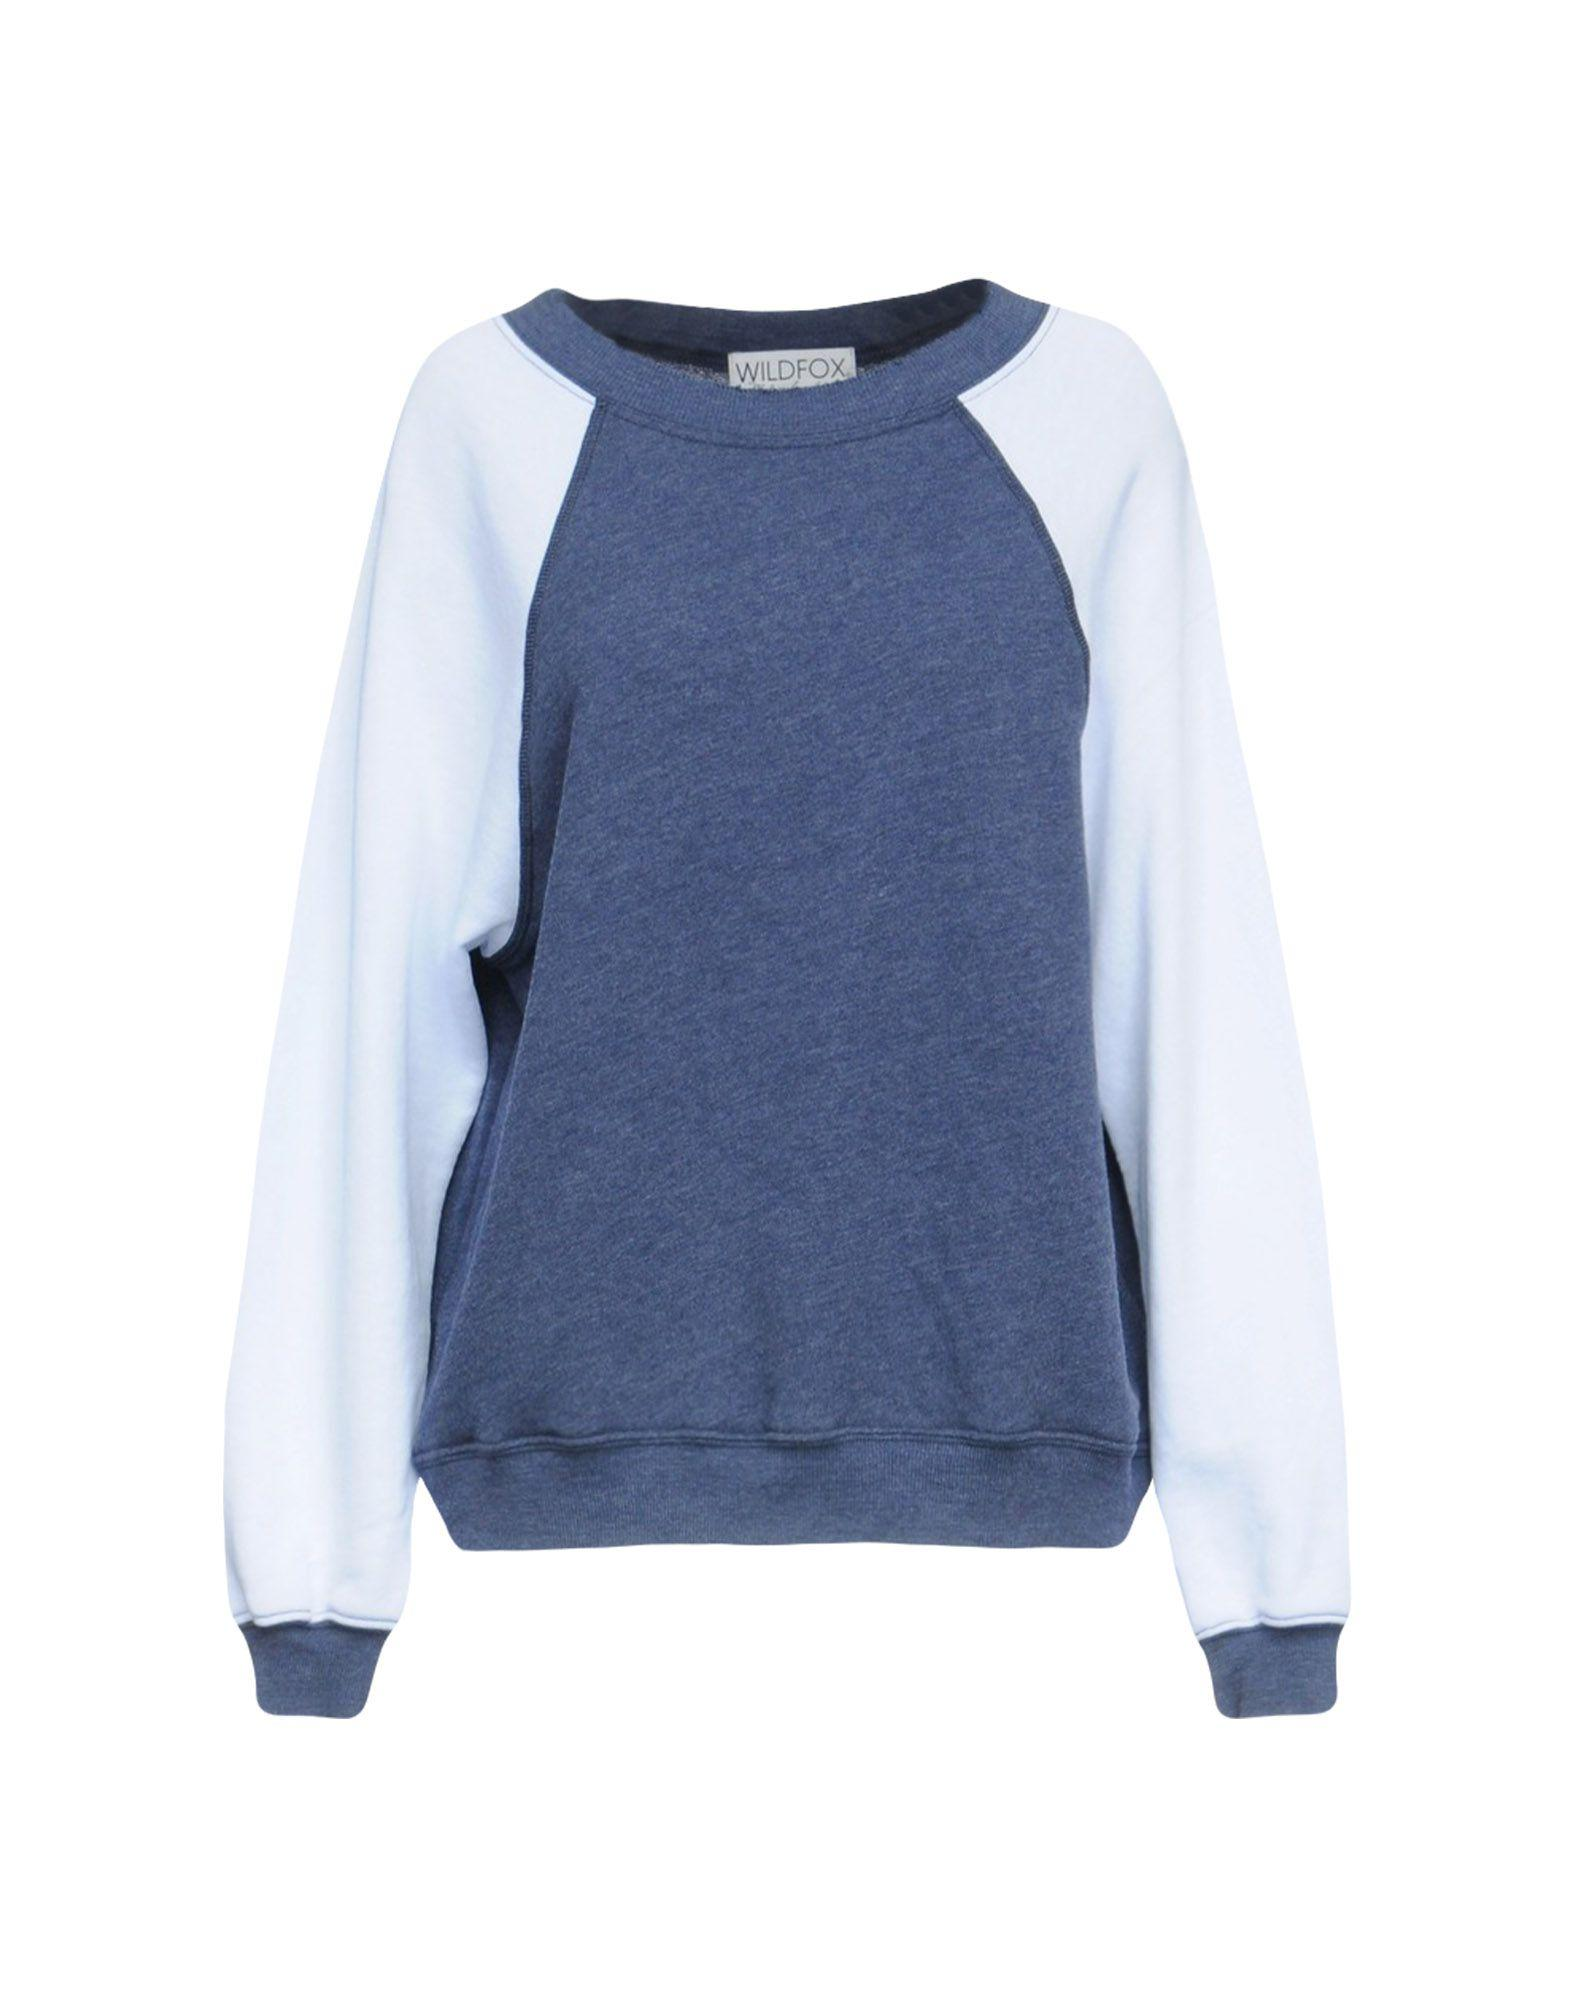 Wildfox Sweatshirts In Slate Blue